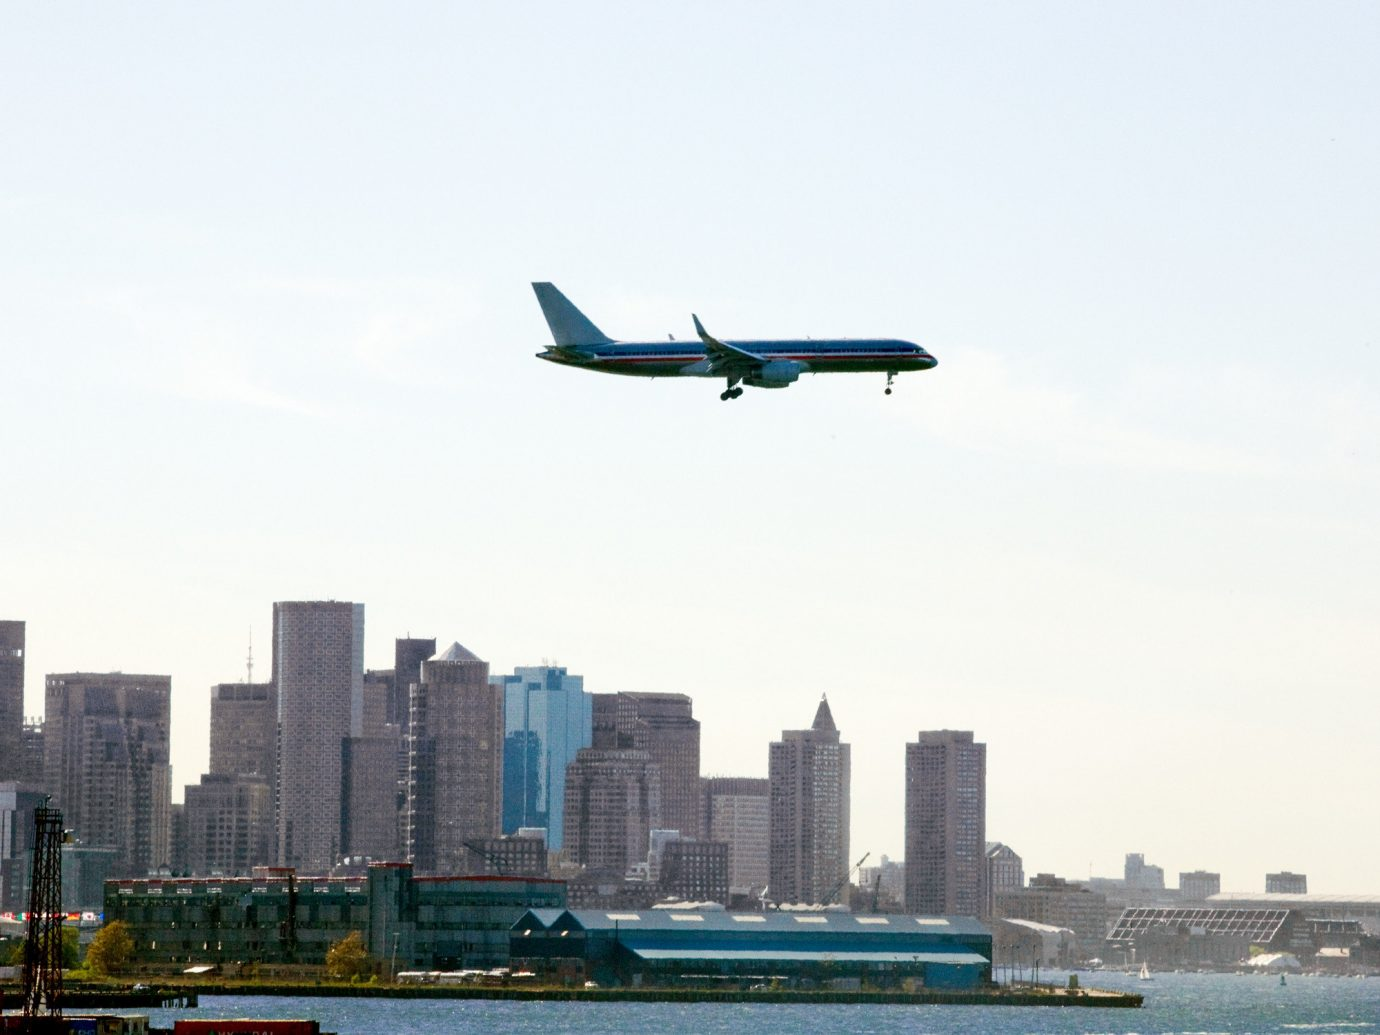 Flights Travel Tips sky outdoor flying aircraft water plane transport airline airplane City vehicle aviation atmosphere of earth air airliner flight infrastructure low skyline land landing Sea